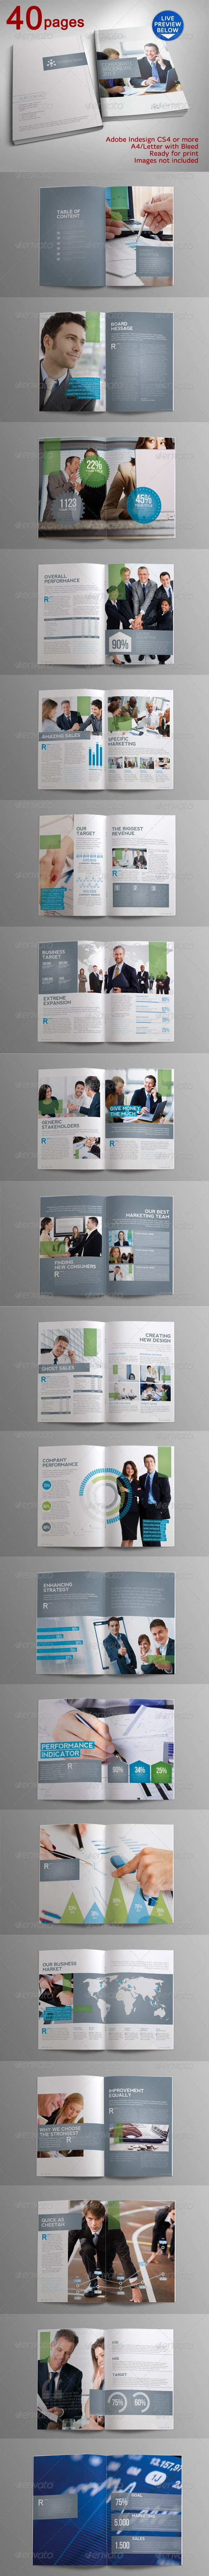 40 Pages Indah Corporate Brochure - GraphicRiver Item for Sale